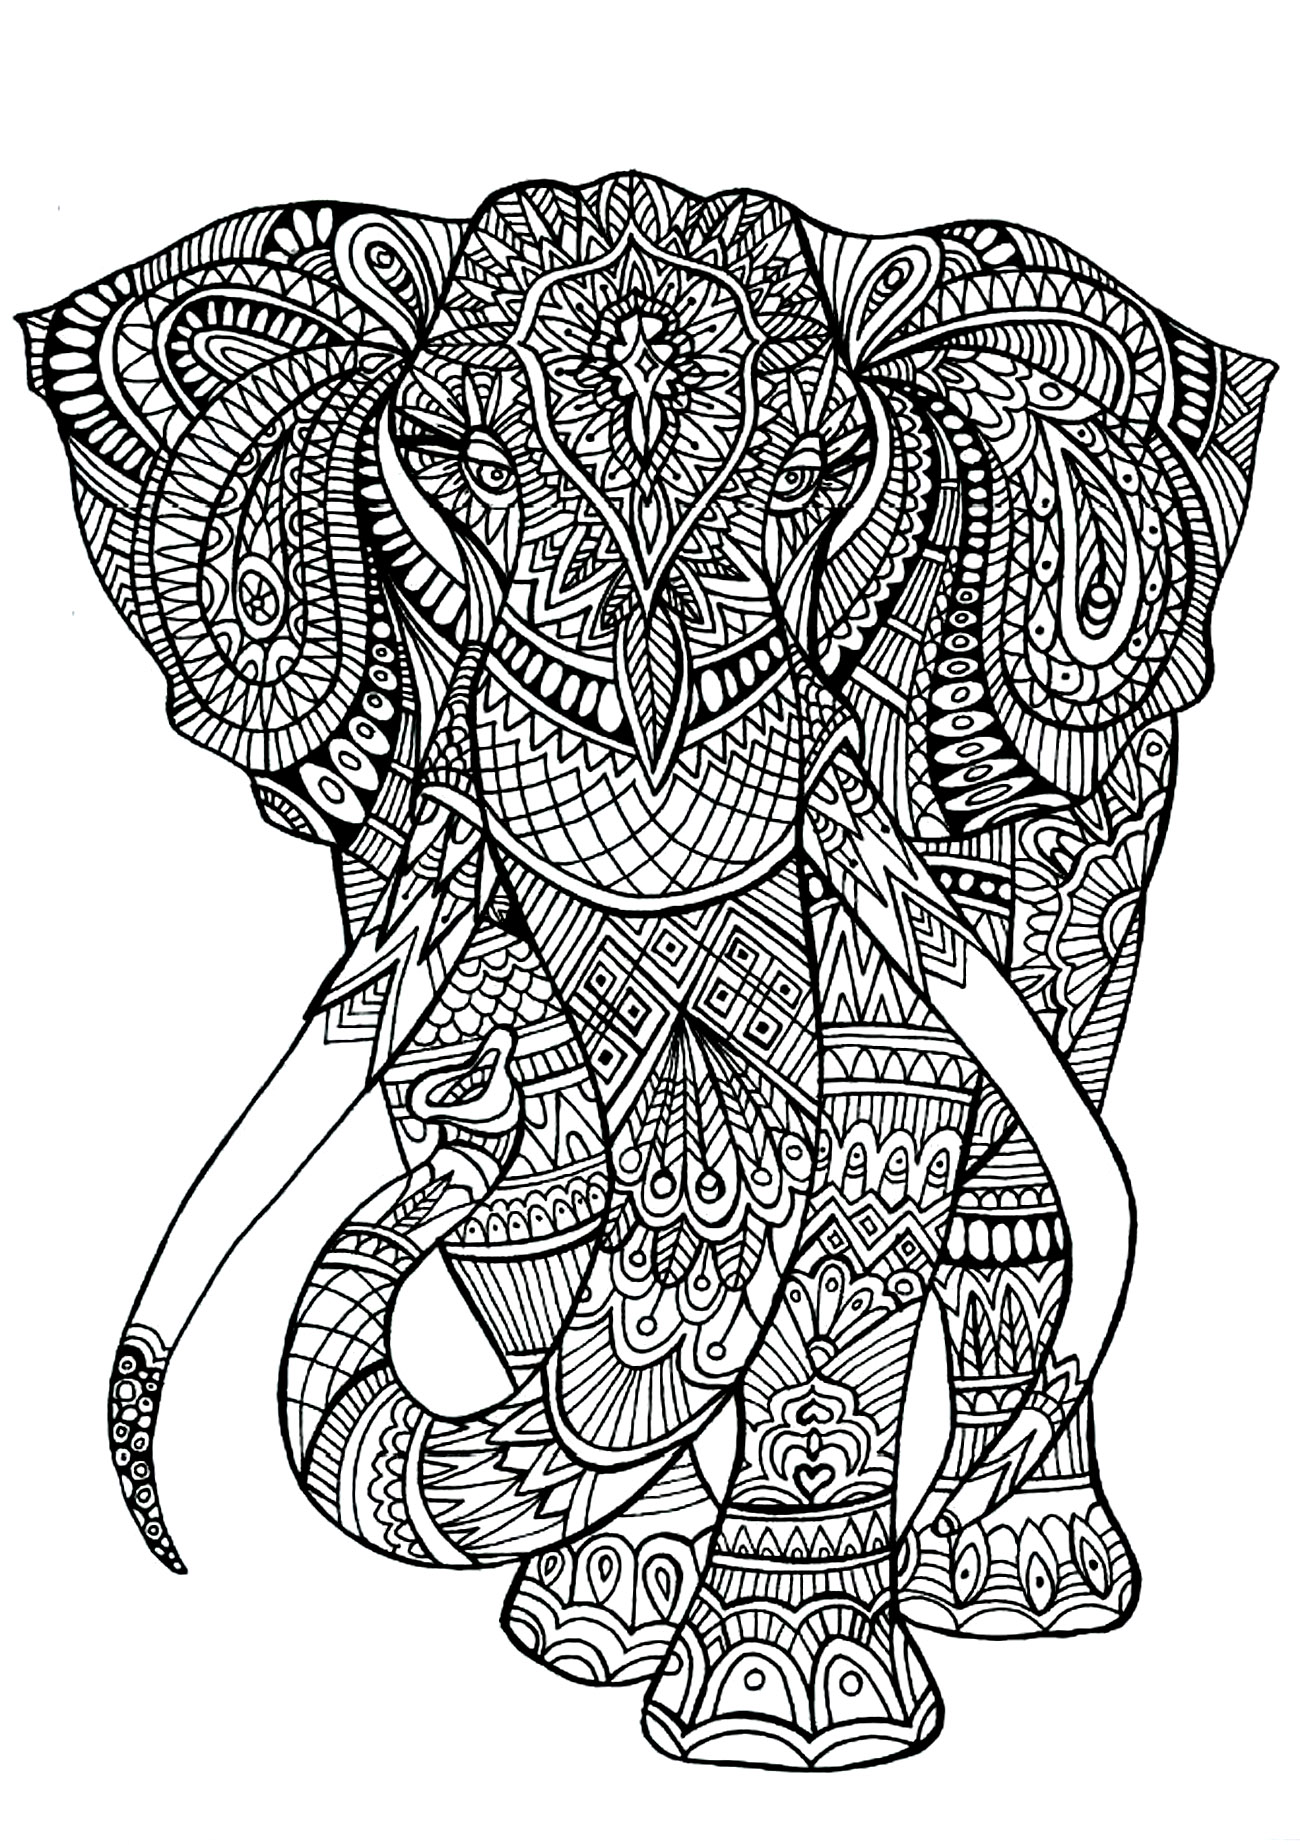 Elephant patterns | Elephants - Coloring pages for adults | JustColor